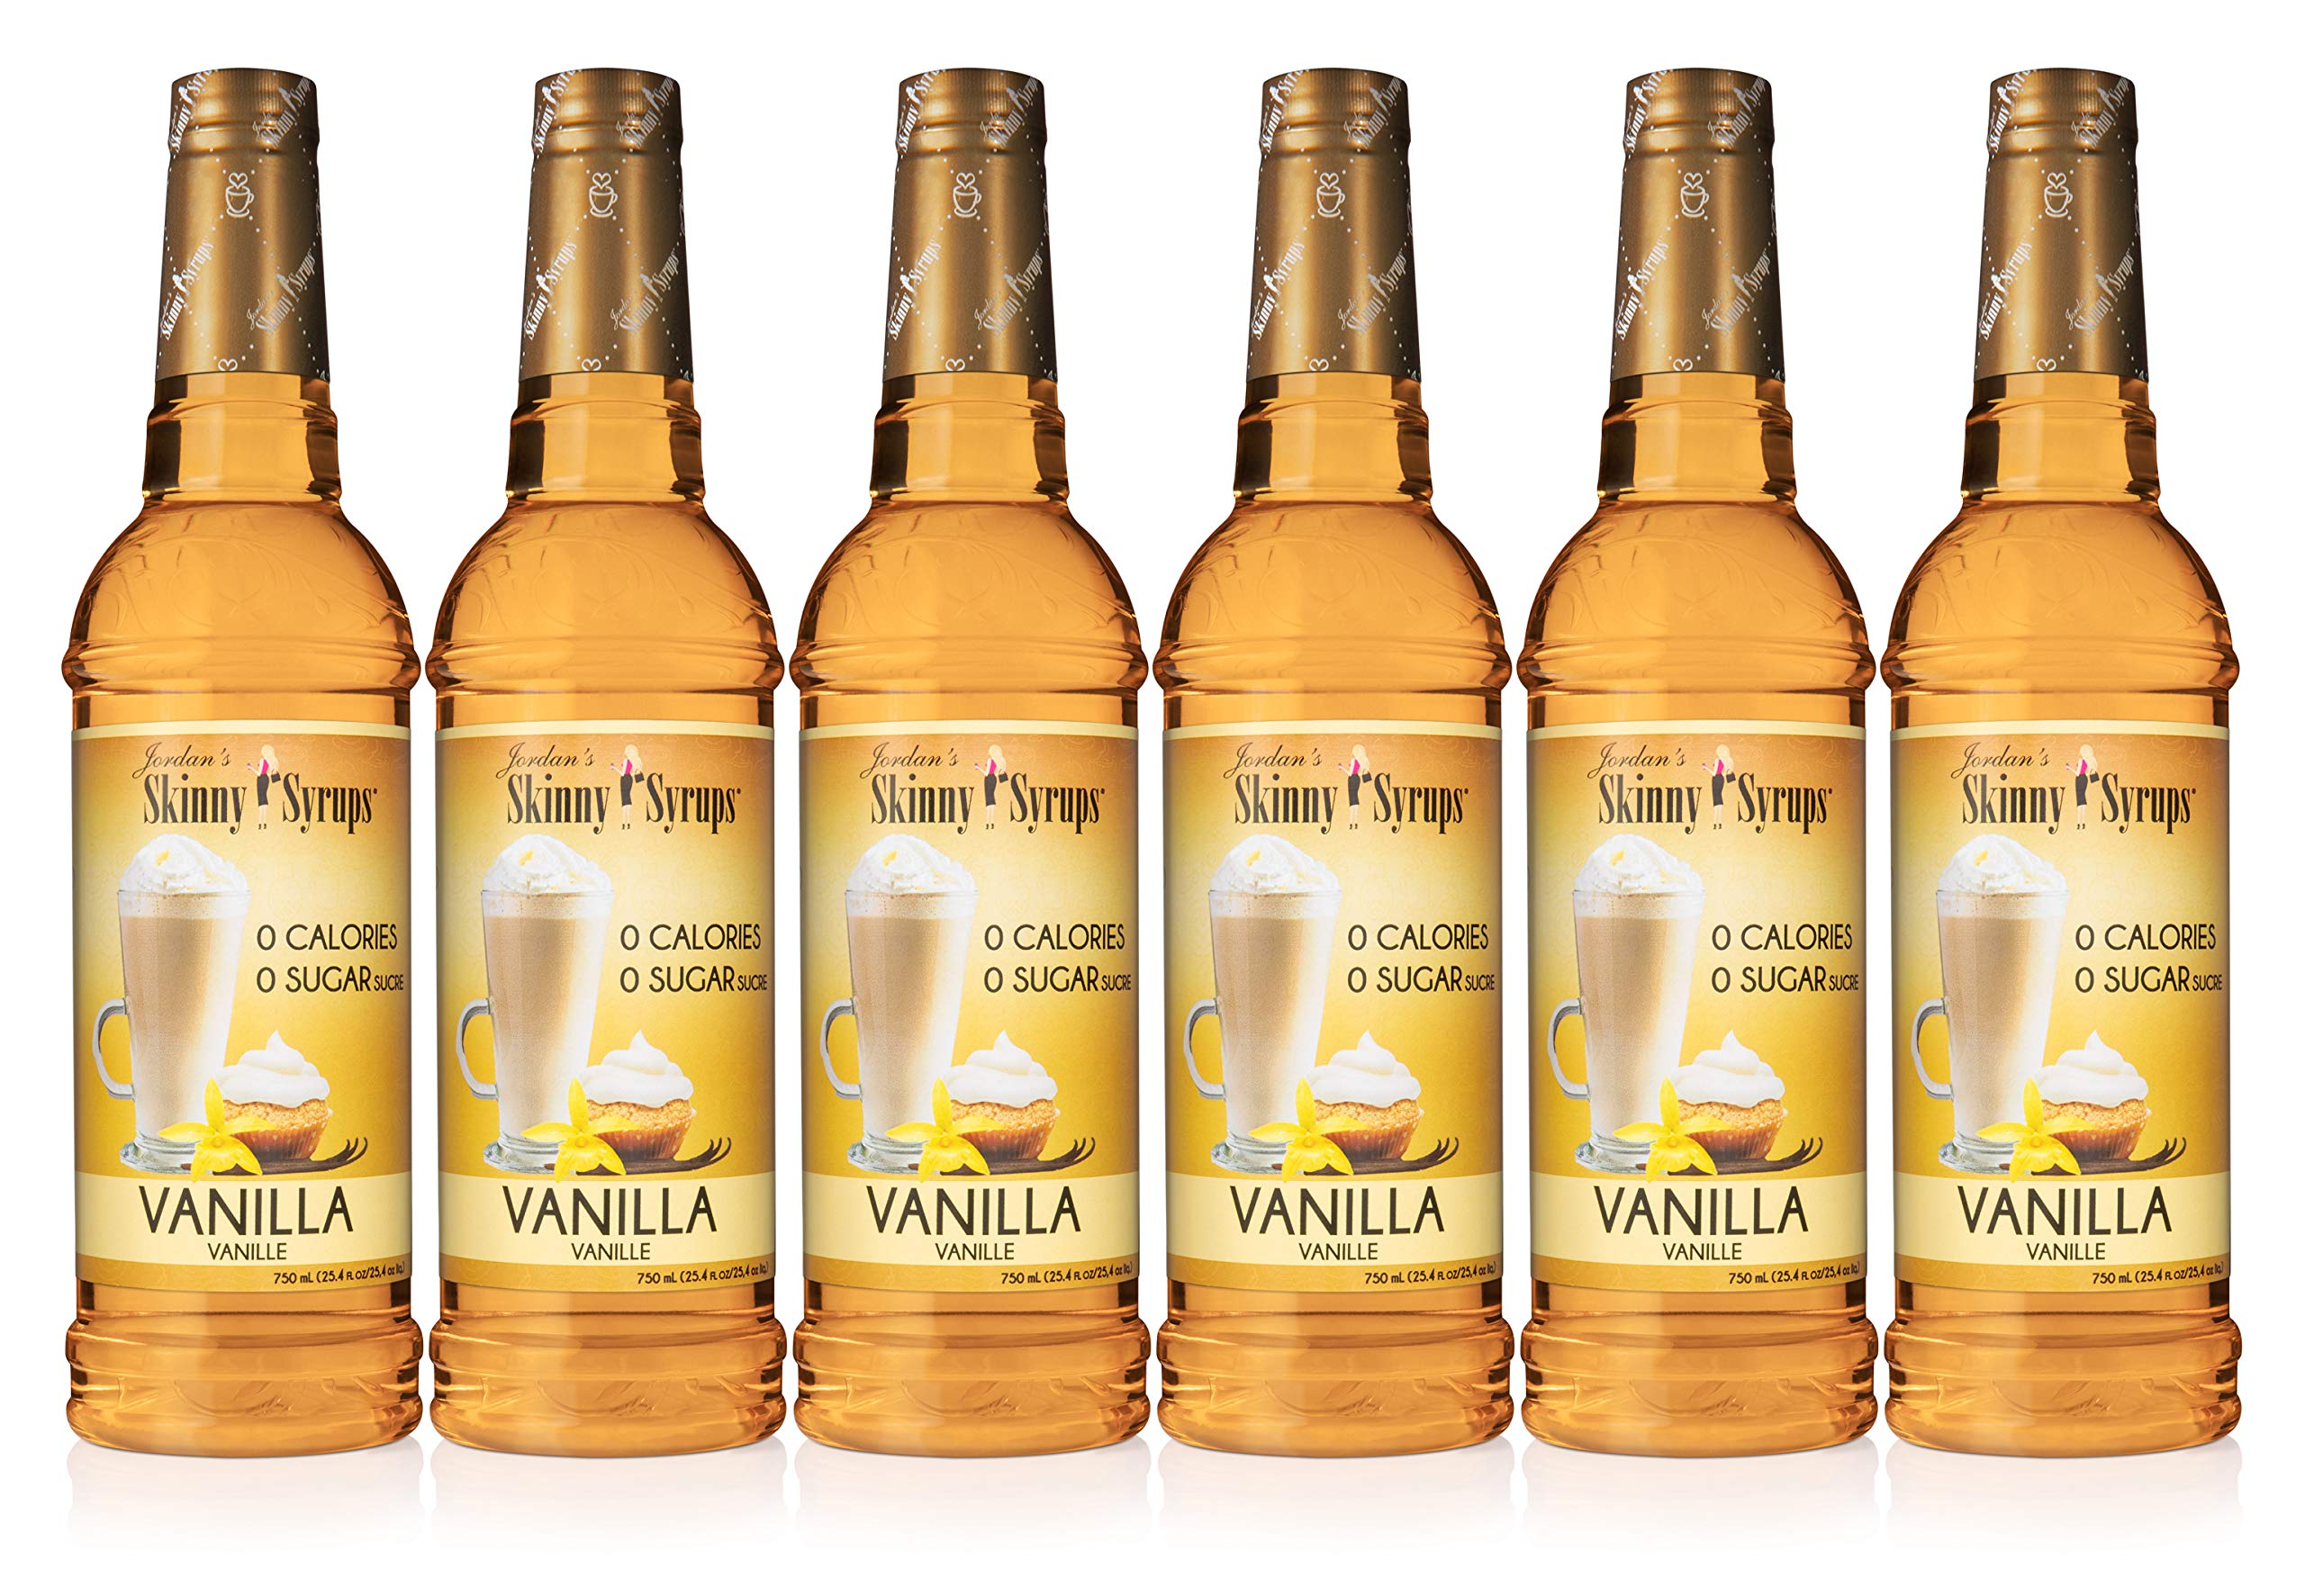 Jordan's Skinny Syrups Vanilla, Sugar Free Coffee Flavoring Syrup, 25.4 Ounce Bottle (Pack of 6)